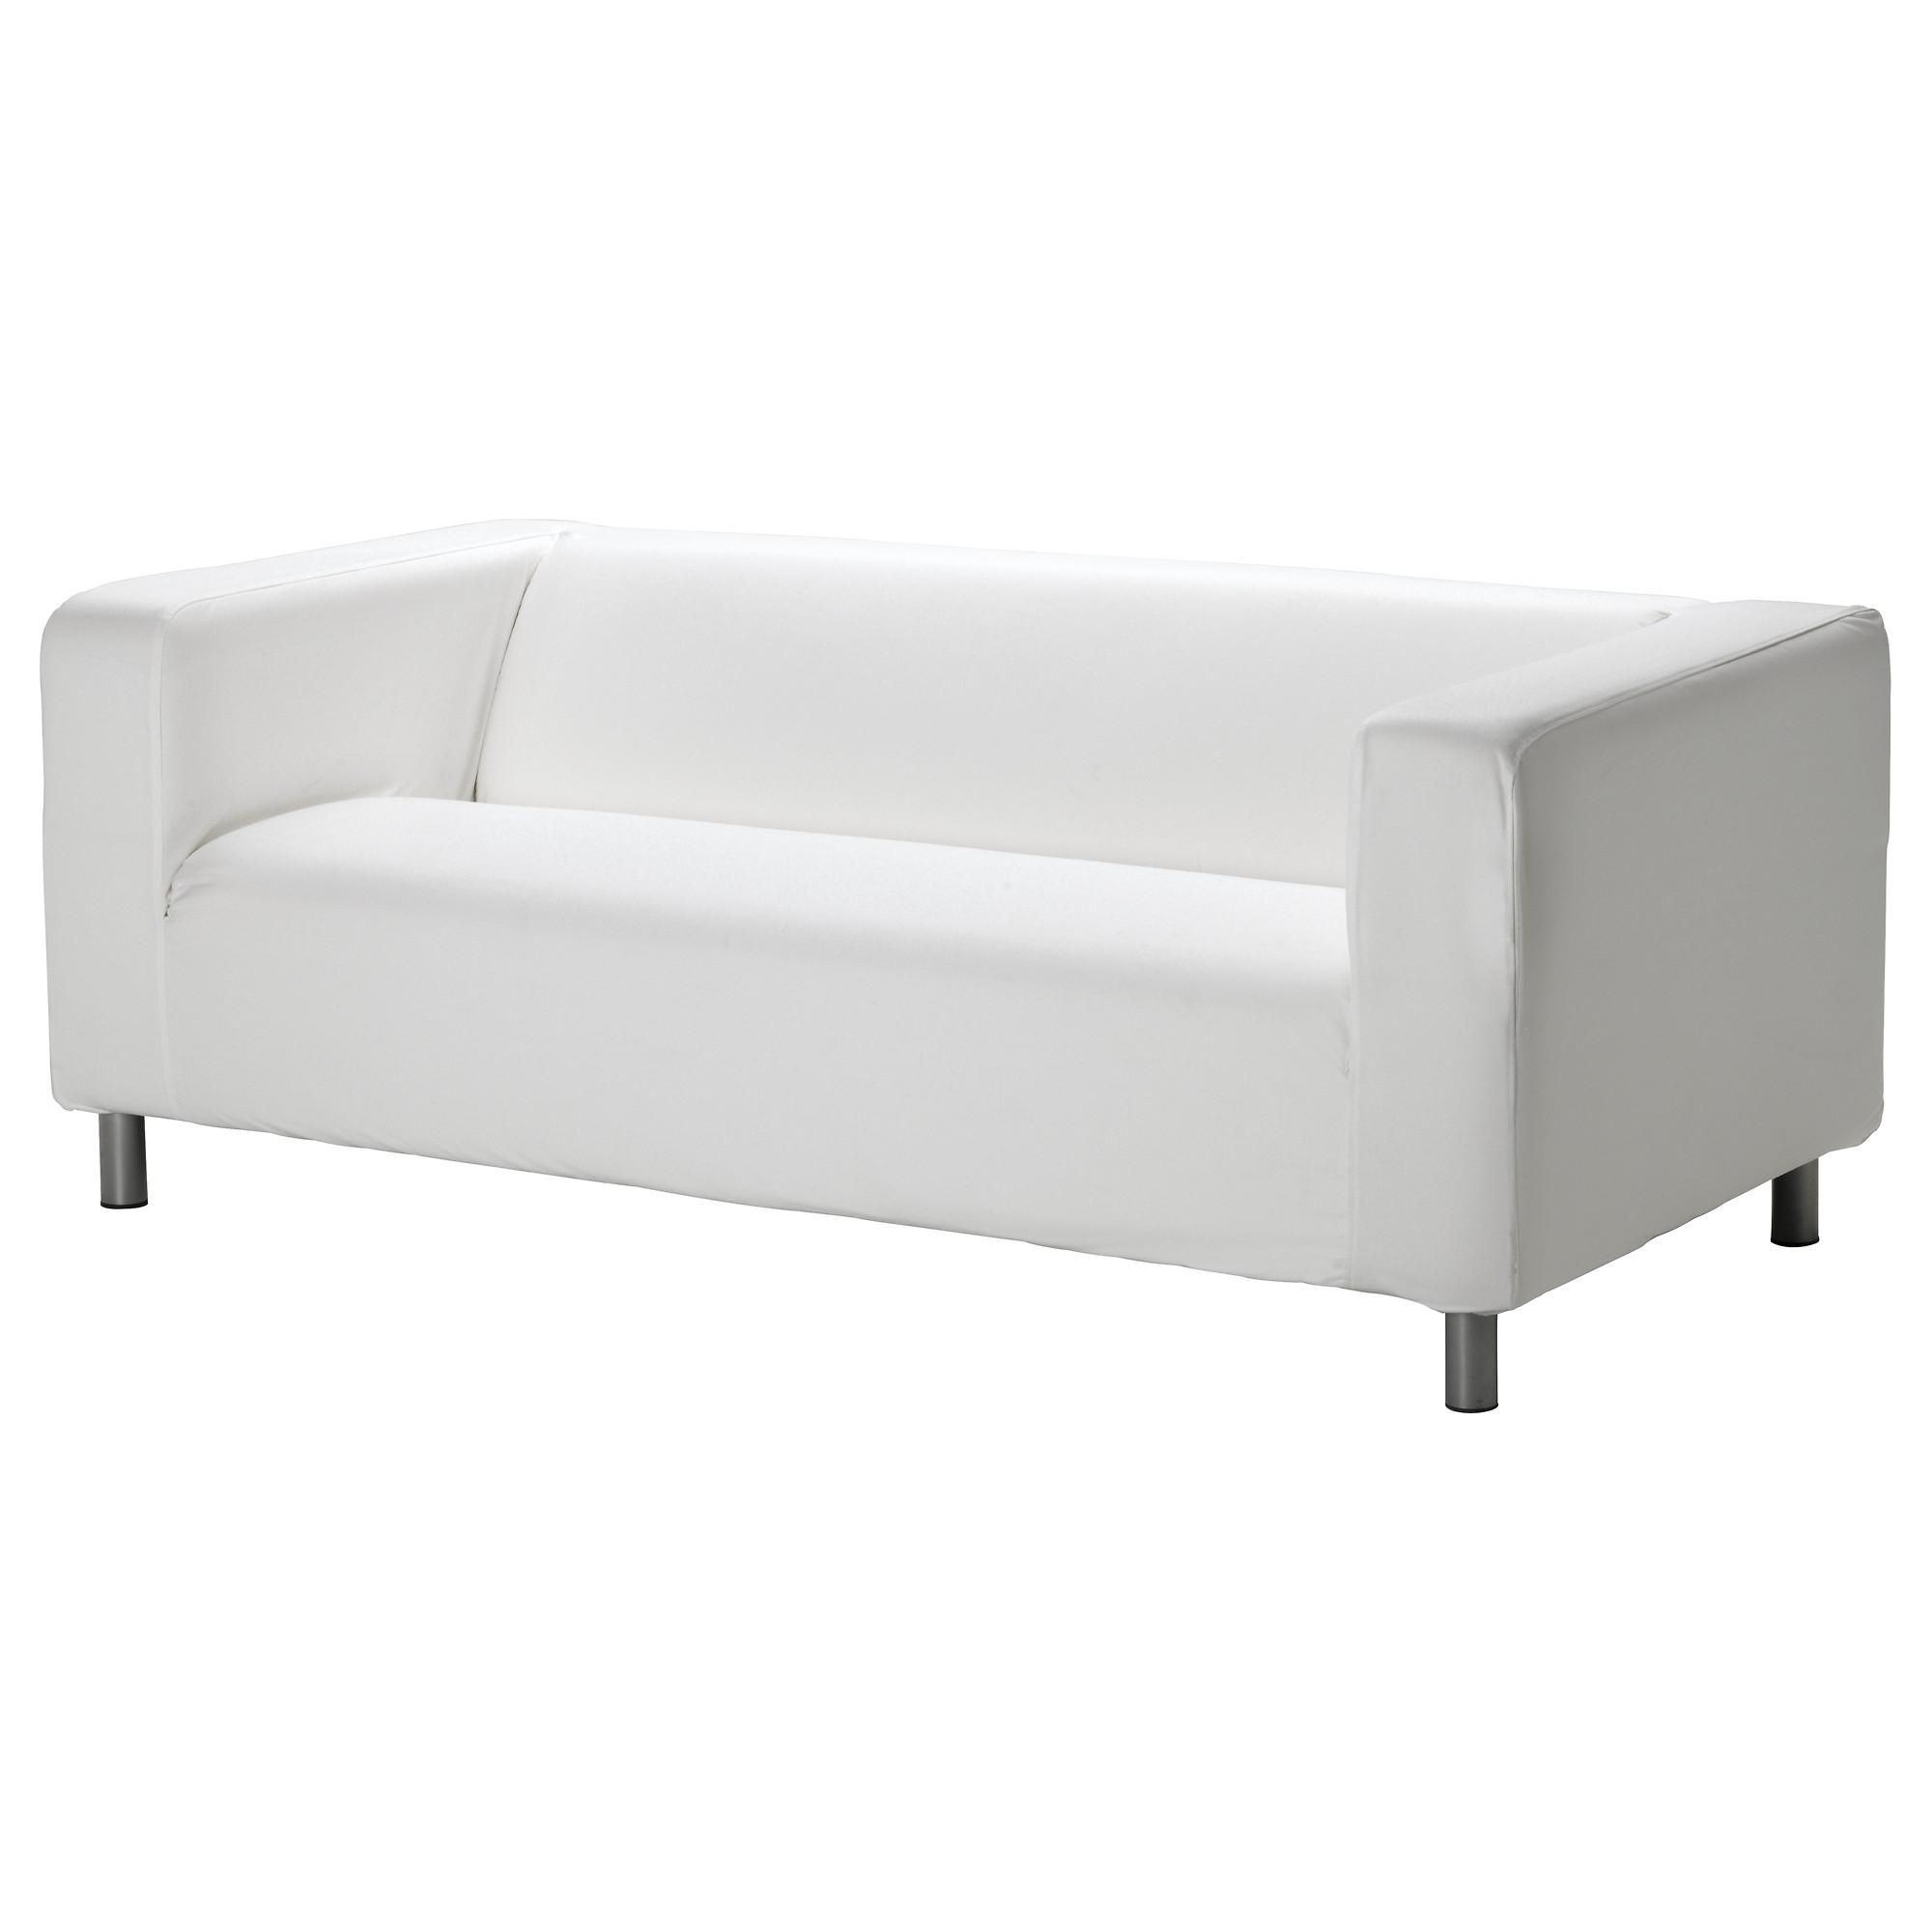 All Sofas – Ikea With Small Sofas Ikea (View 19 of 20)